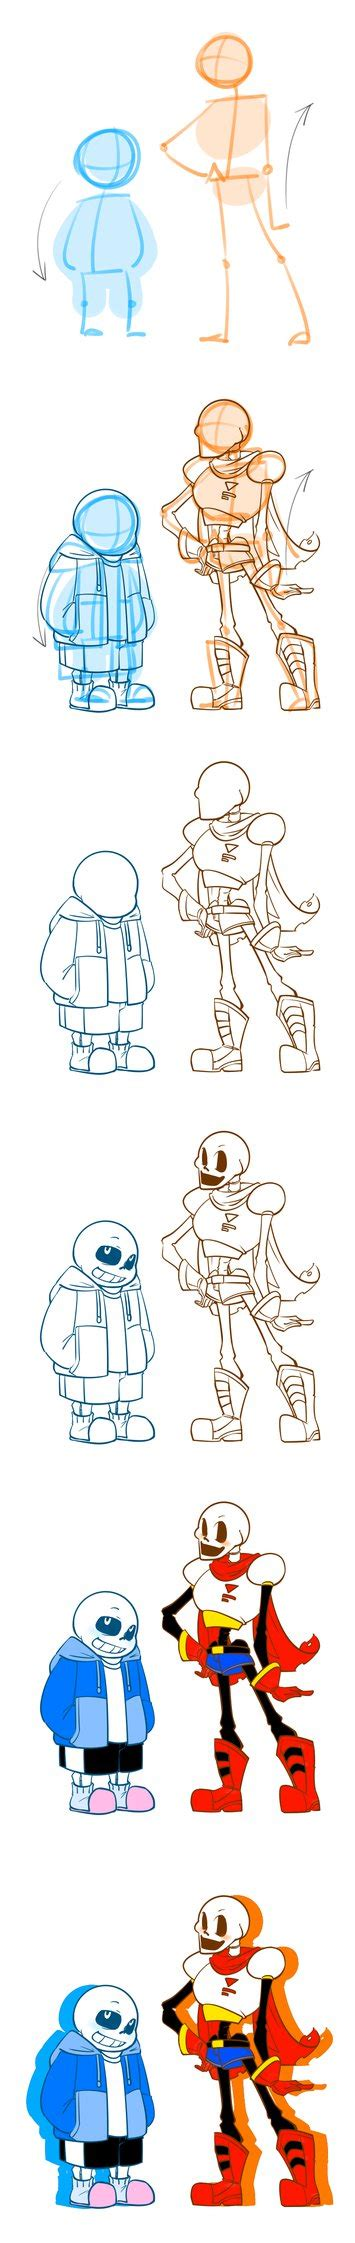 undertale drawing guide books undertale skelebros drawing tutorial by ursik l on